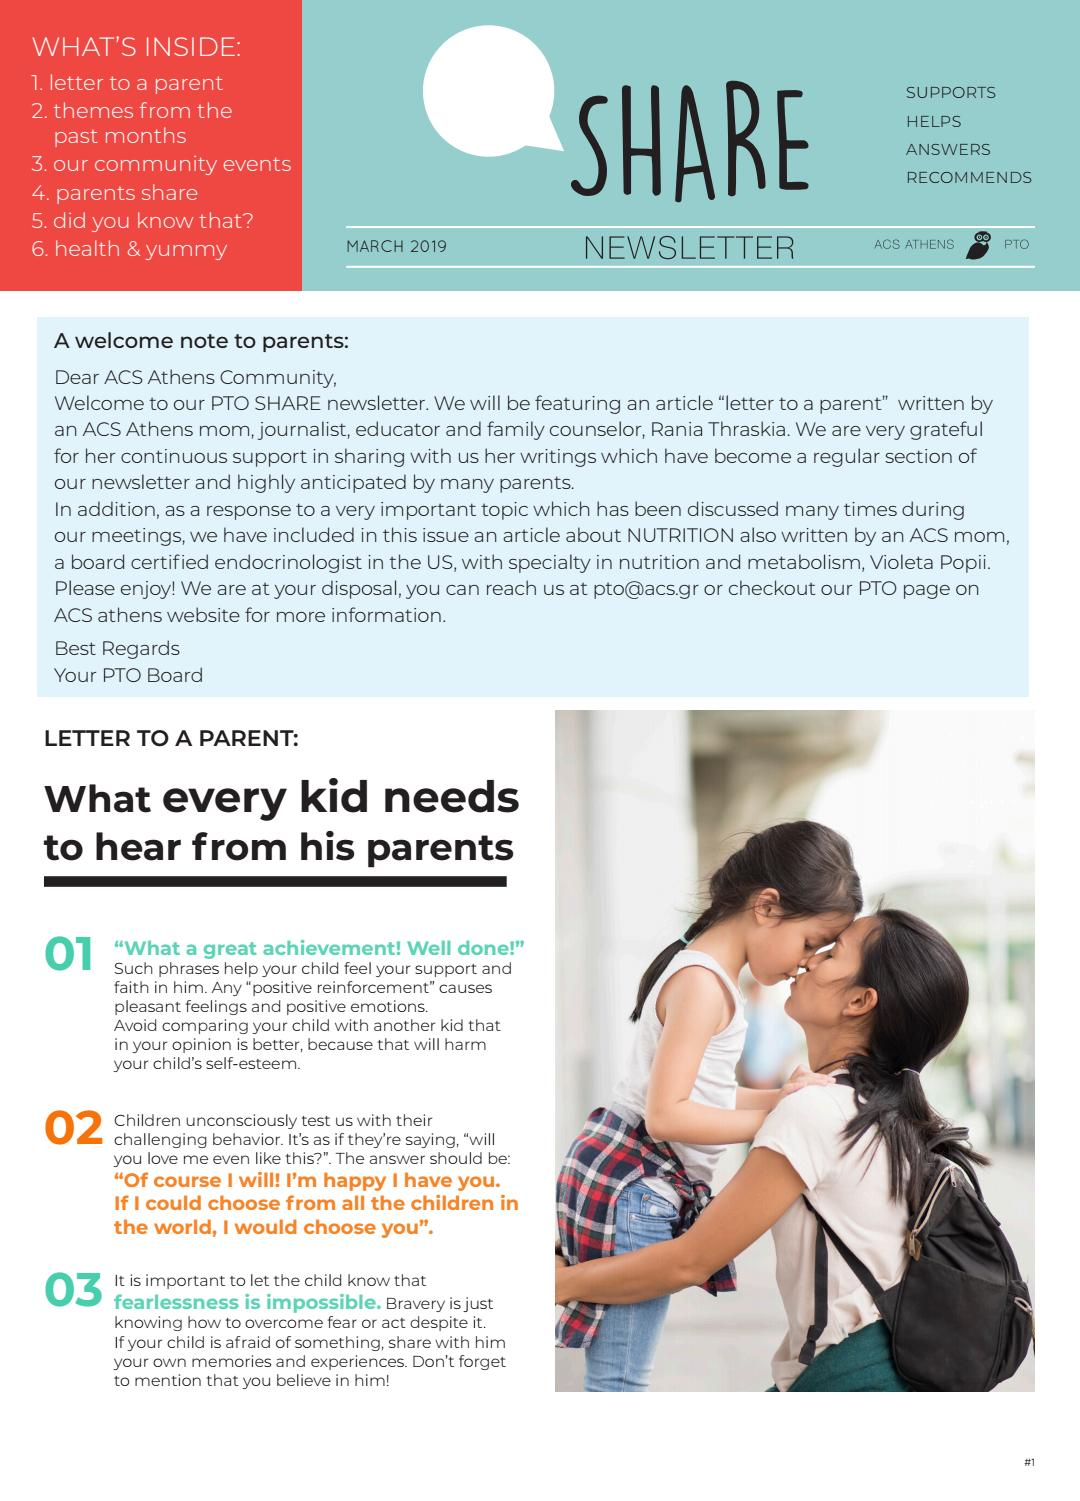 We Need To Hear From All Parents And >> Pto Share Newsletter March 2019 By Acs Athens Issuu